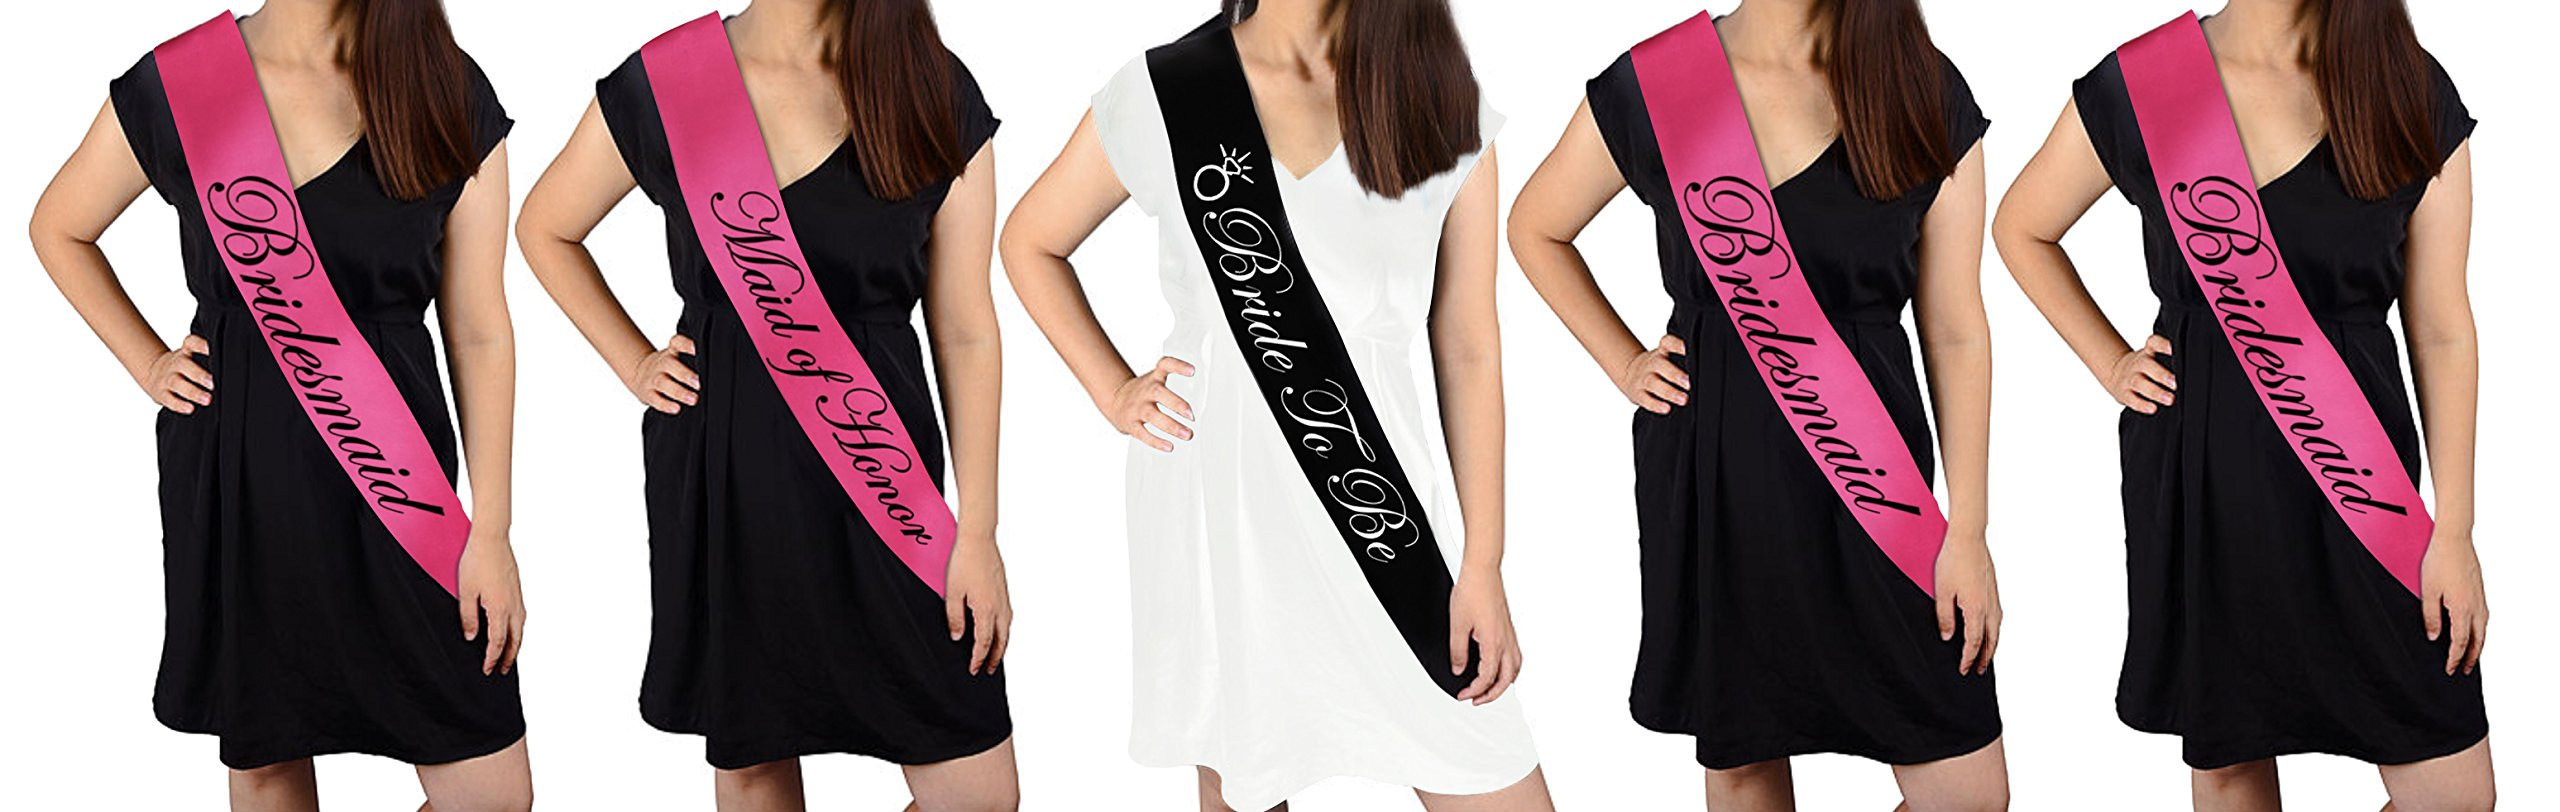 BACHELORETTE PARTY SASH SET(PINK):Bride to be sash,Maid of honor sash,3 Bridesmaid sash/Team Bride free Bride/Bride tribe tattoos, for Bridal shower,Engagement party favors ⊃plies (pink,black)